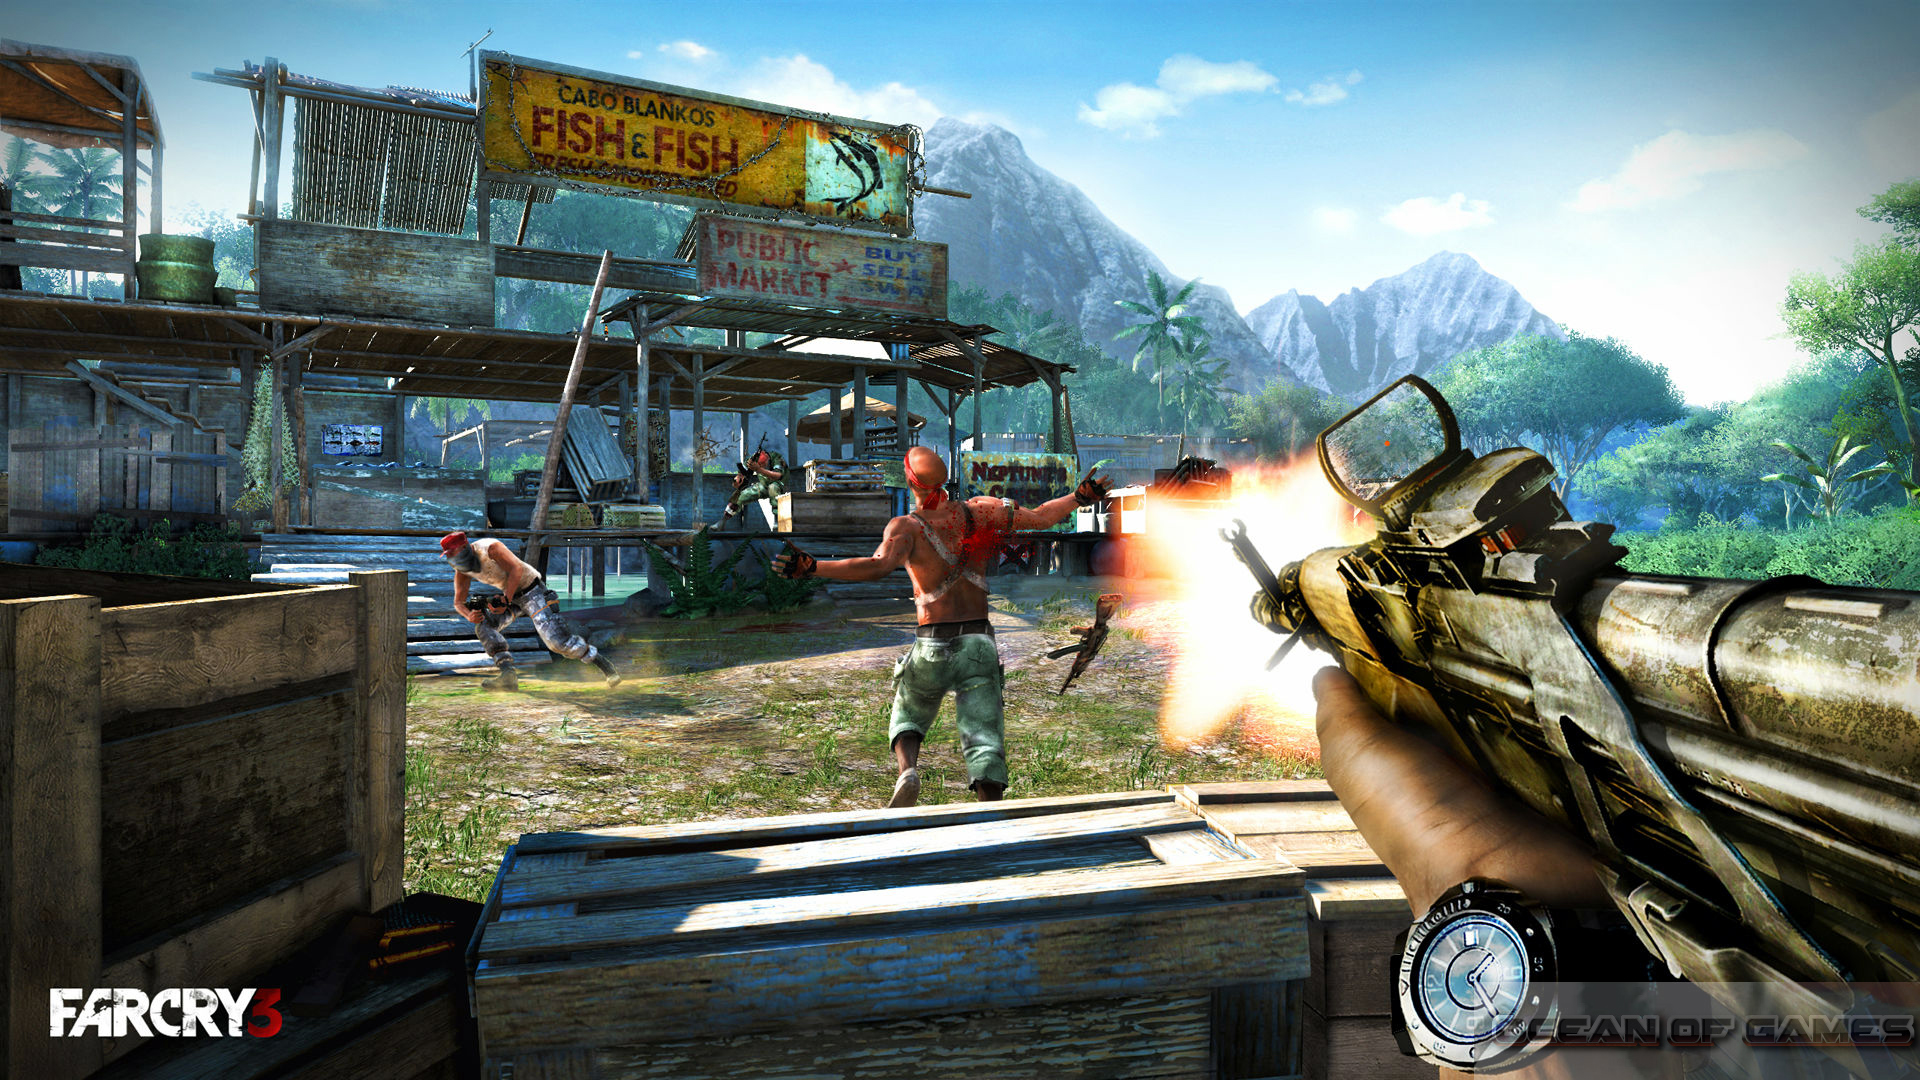 Far cry 3 download free pc (no torrent) youtube.